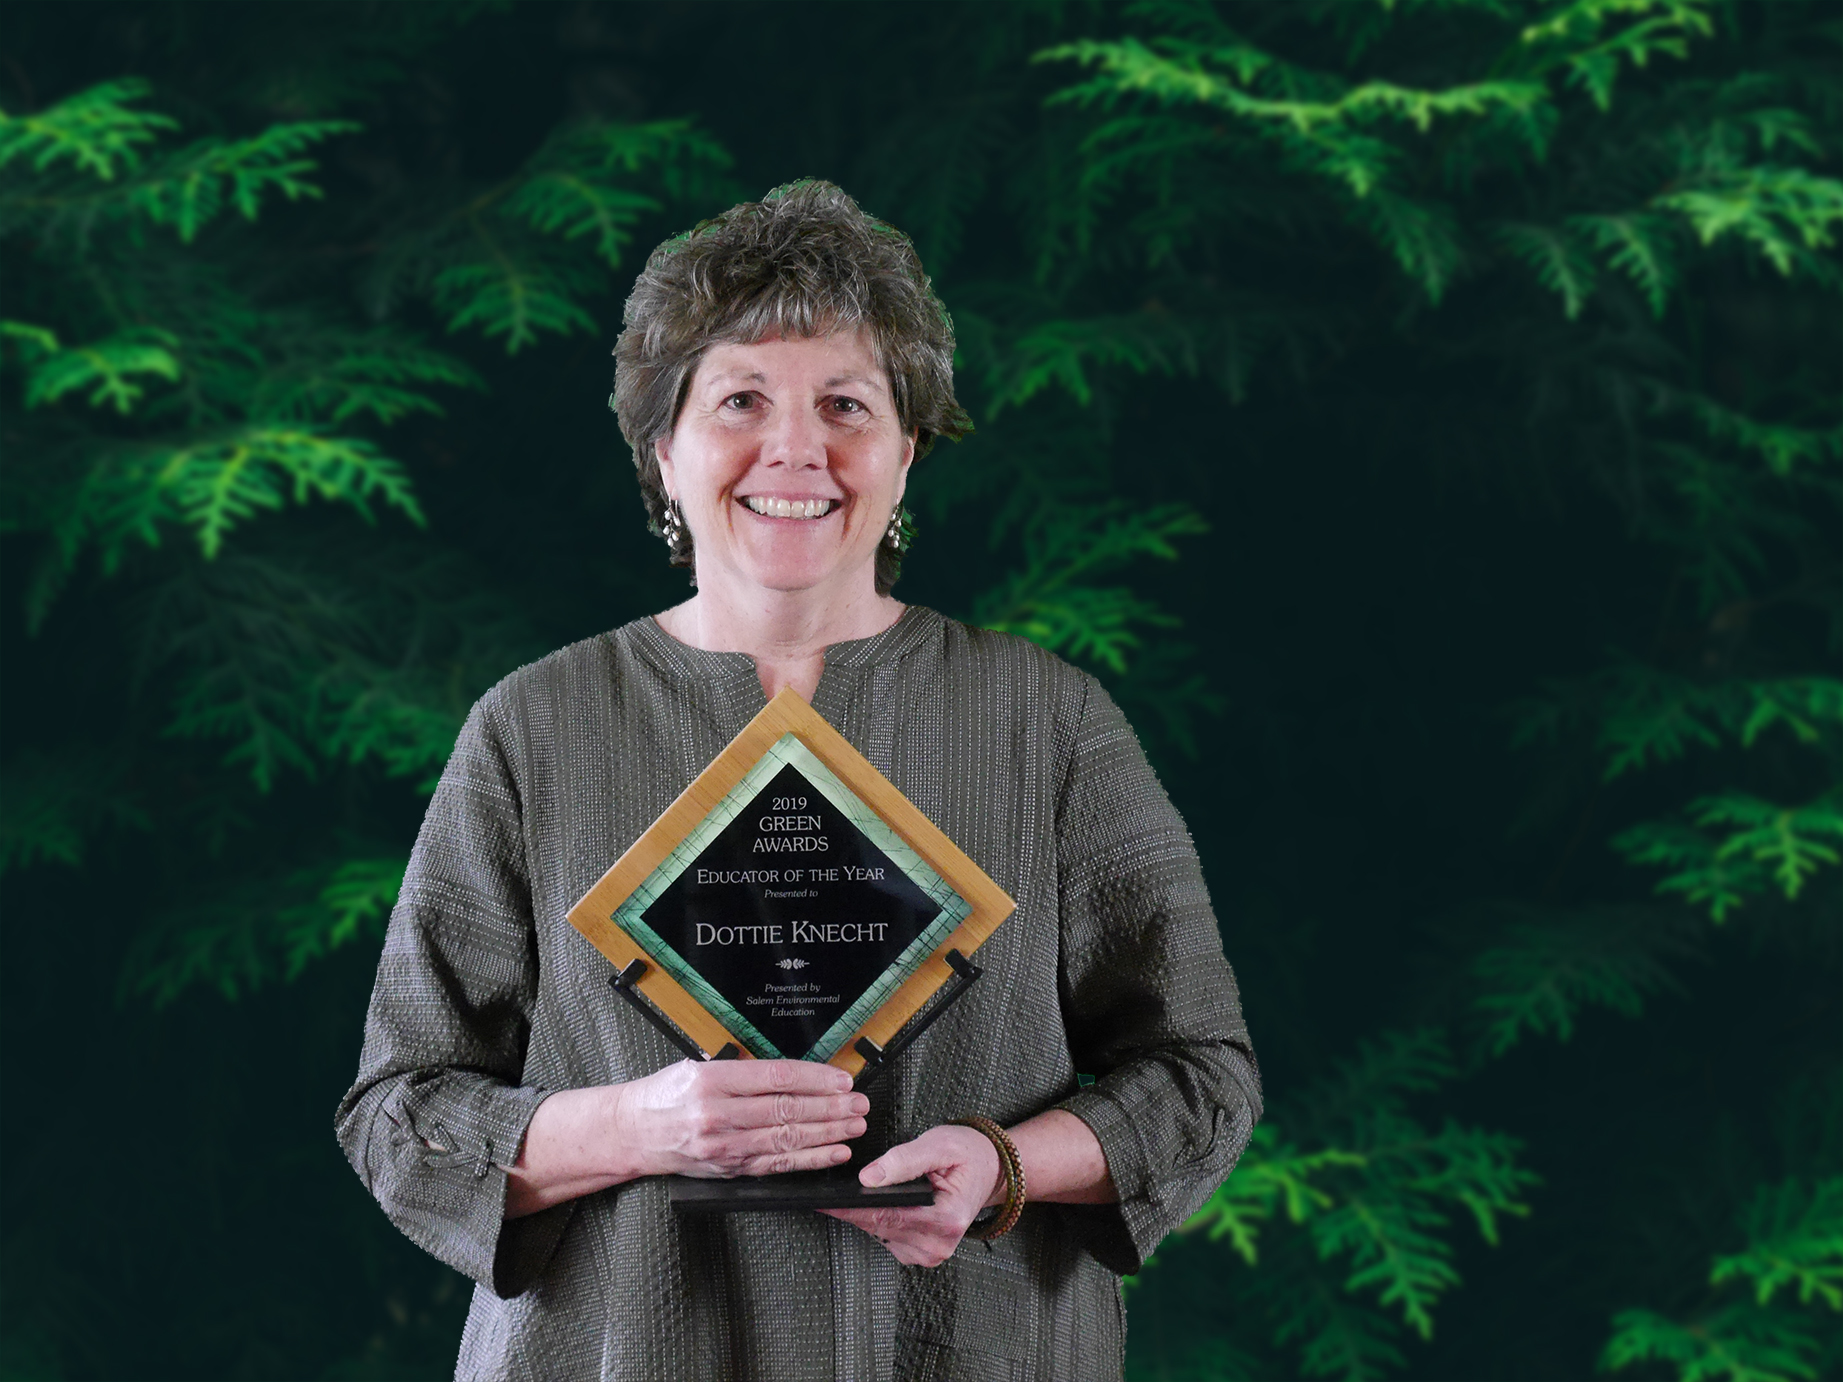 DOTTIE KNECHT Educator of the Year